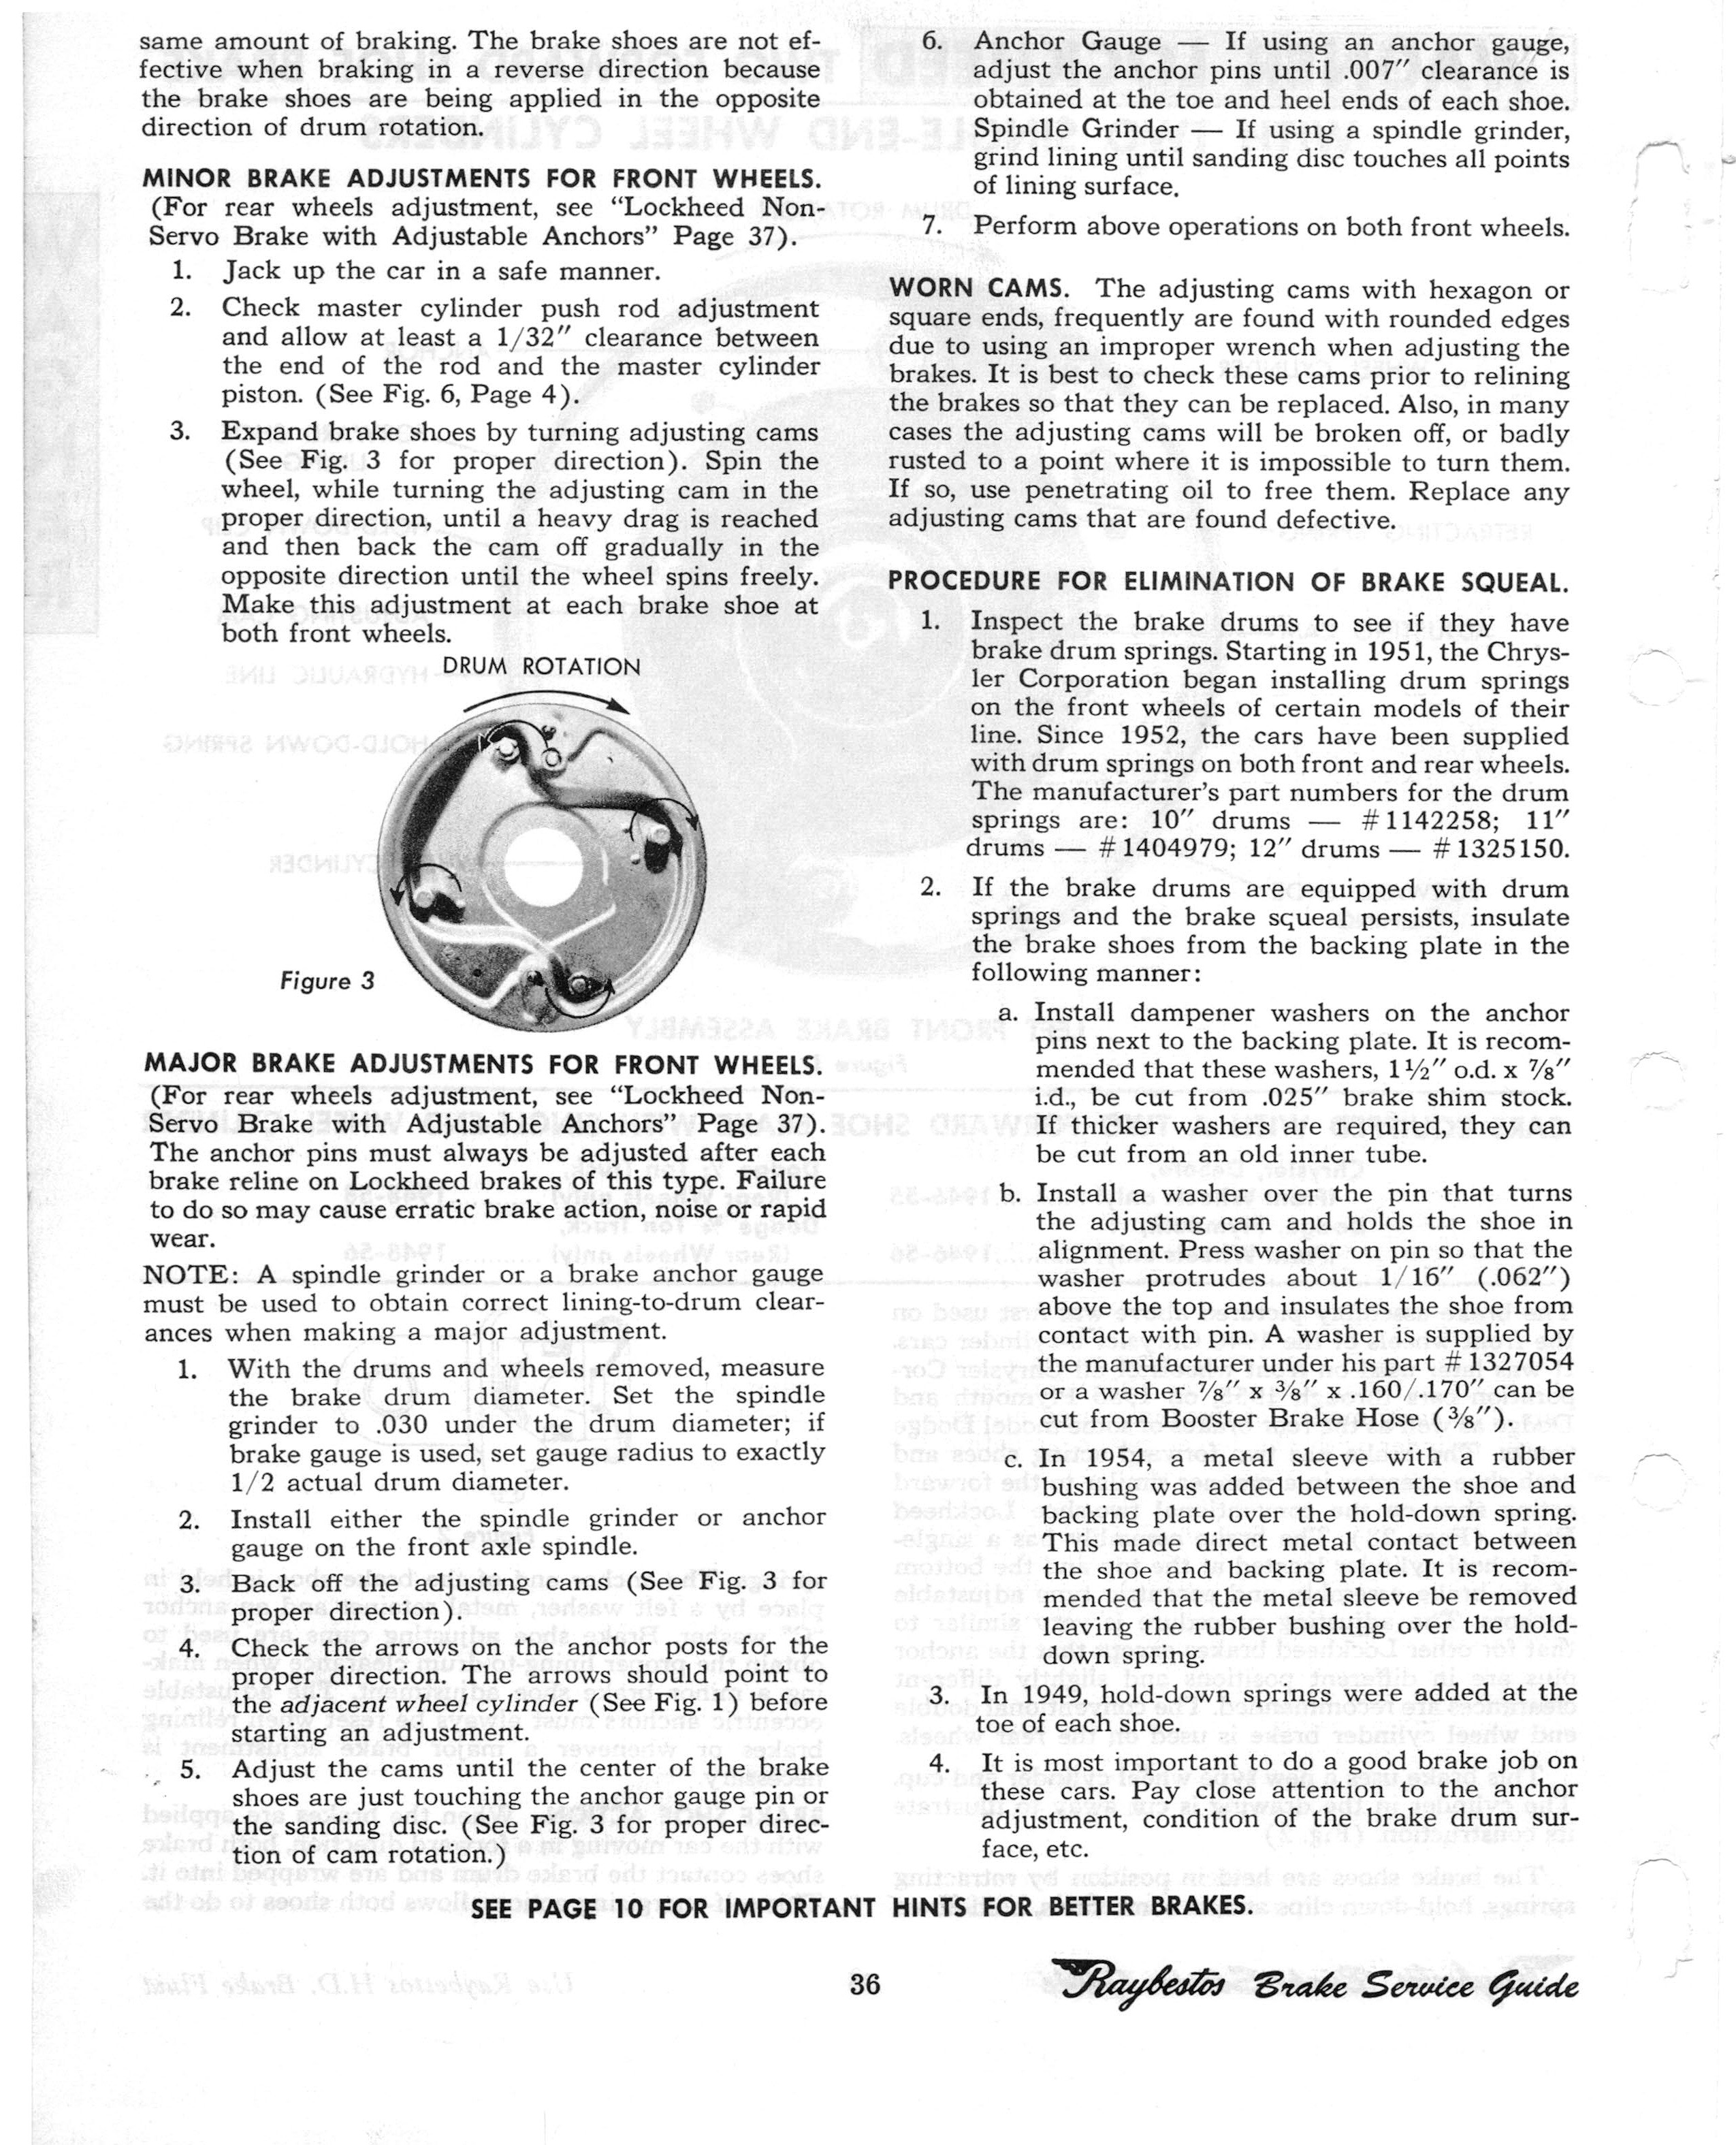 1940-1961 Brake Service Guide by Raybestos page 38 of 76